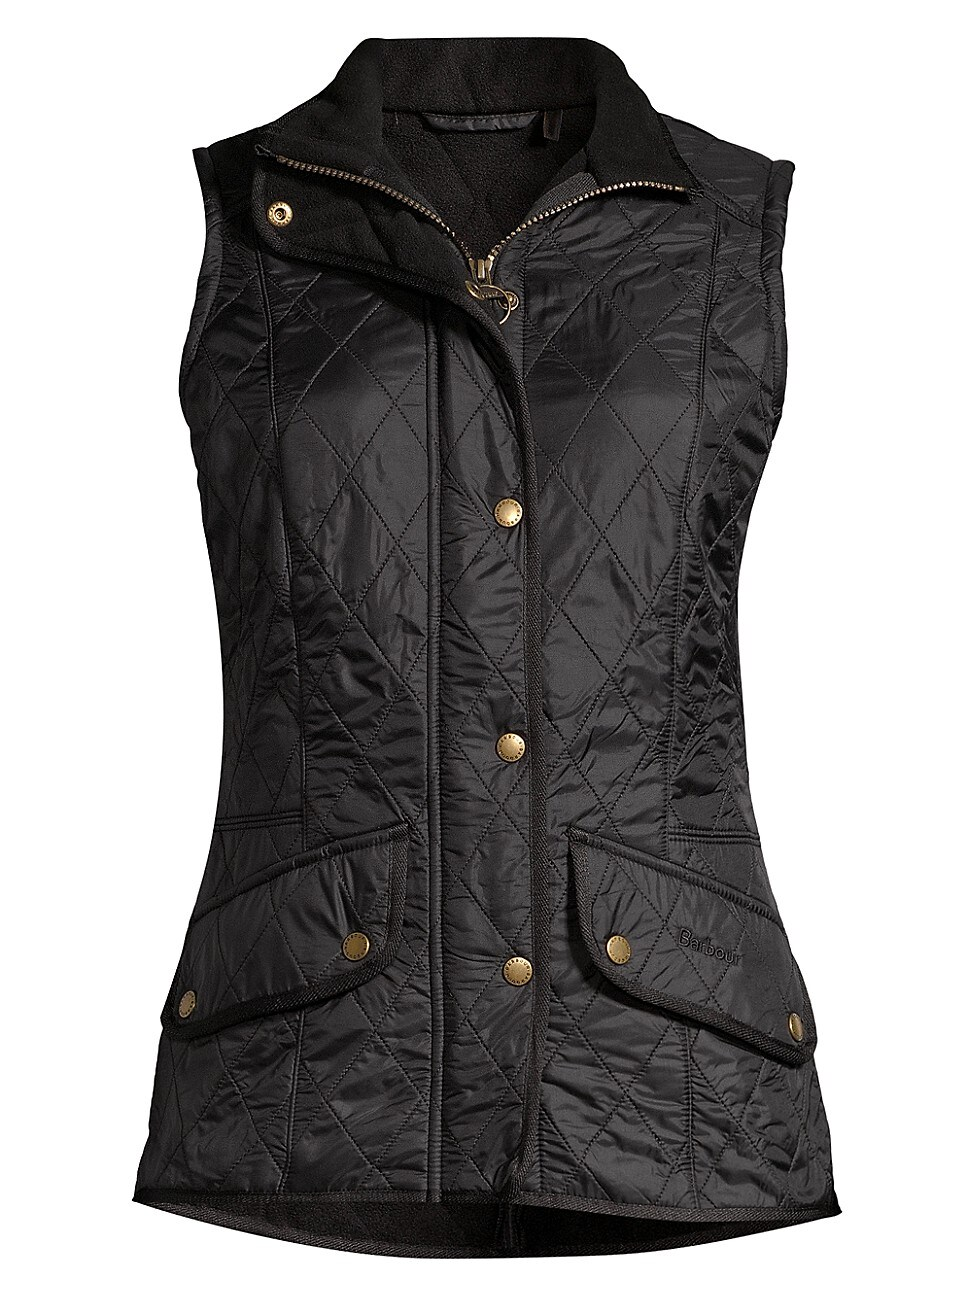 Barbour Quilted Fleece-lined Vest In Black